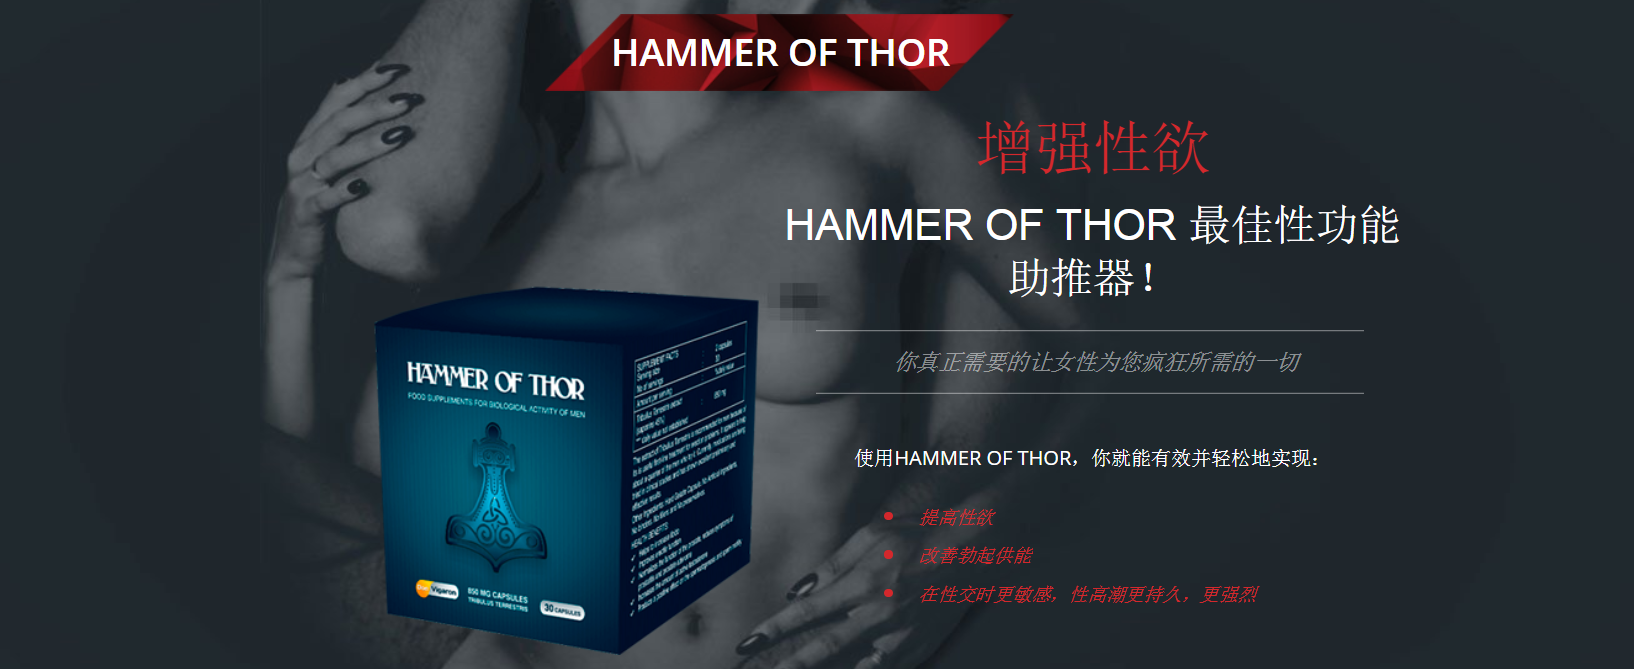 china hammer of thor 膠囊改善效力 hammer of thor official